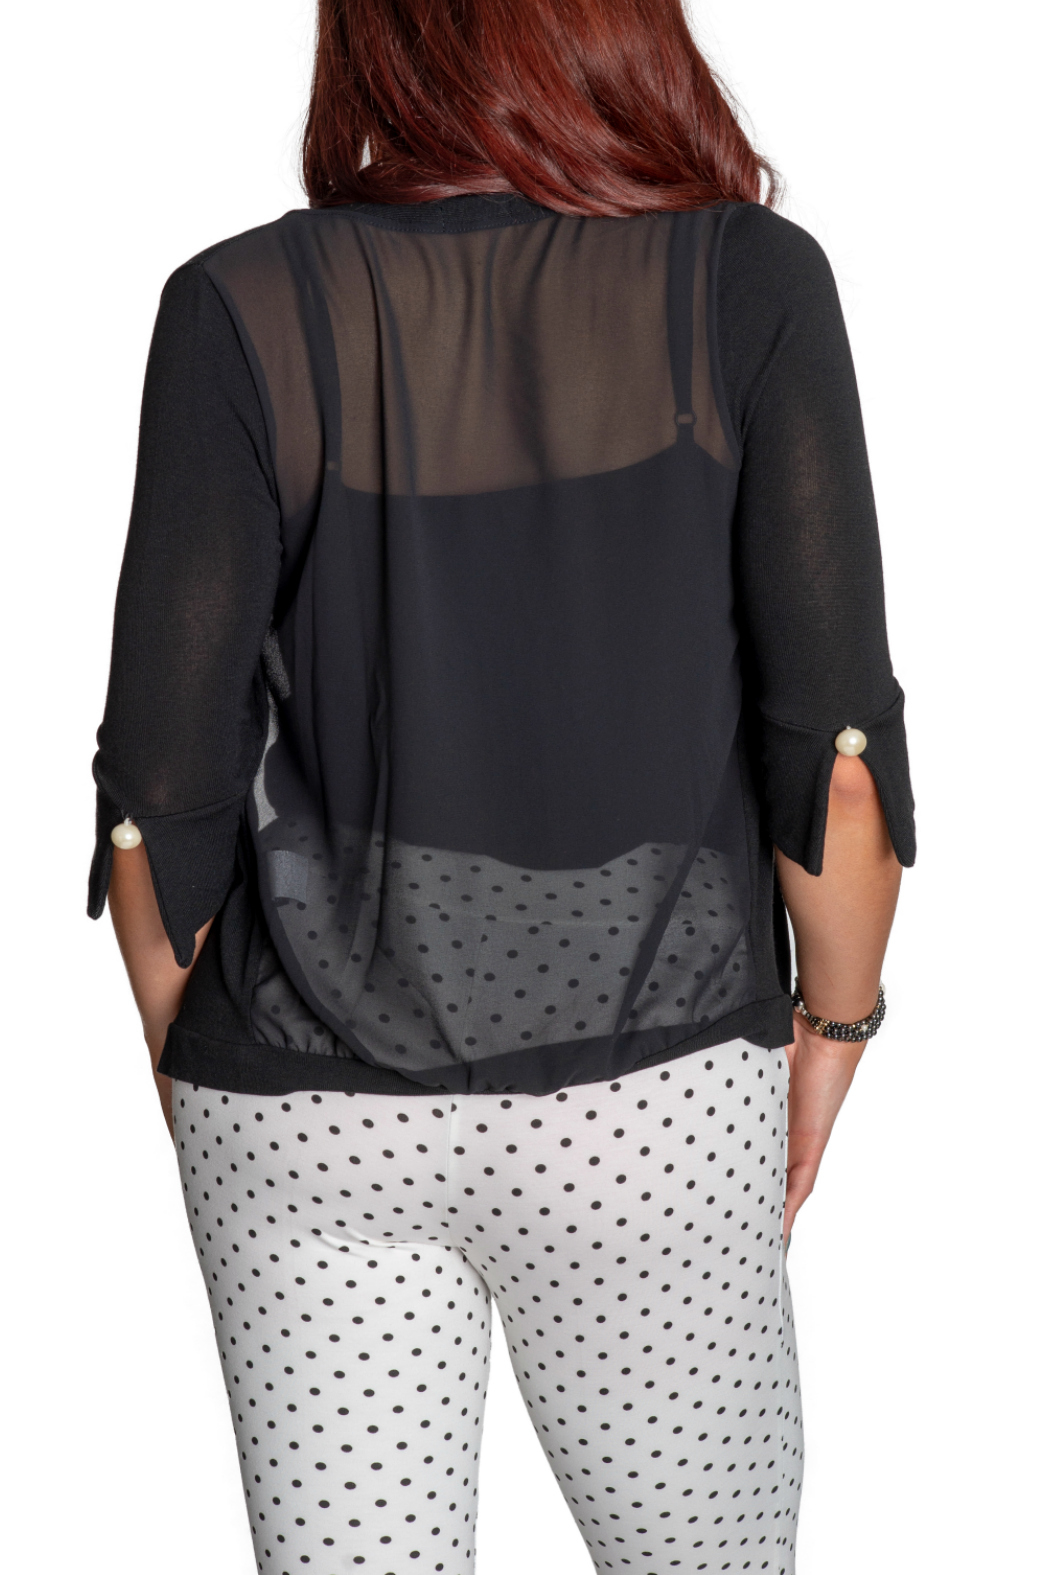 Femme Fatale Chiffon Back Cardigan w Pearl Buttons - Side Cropped Image